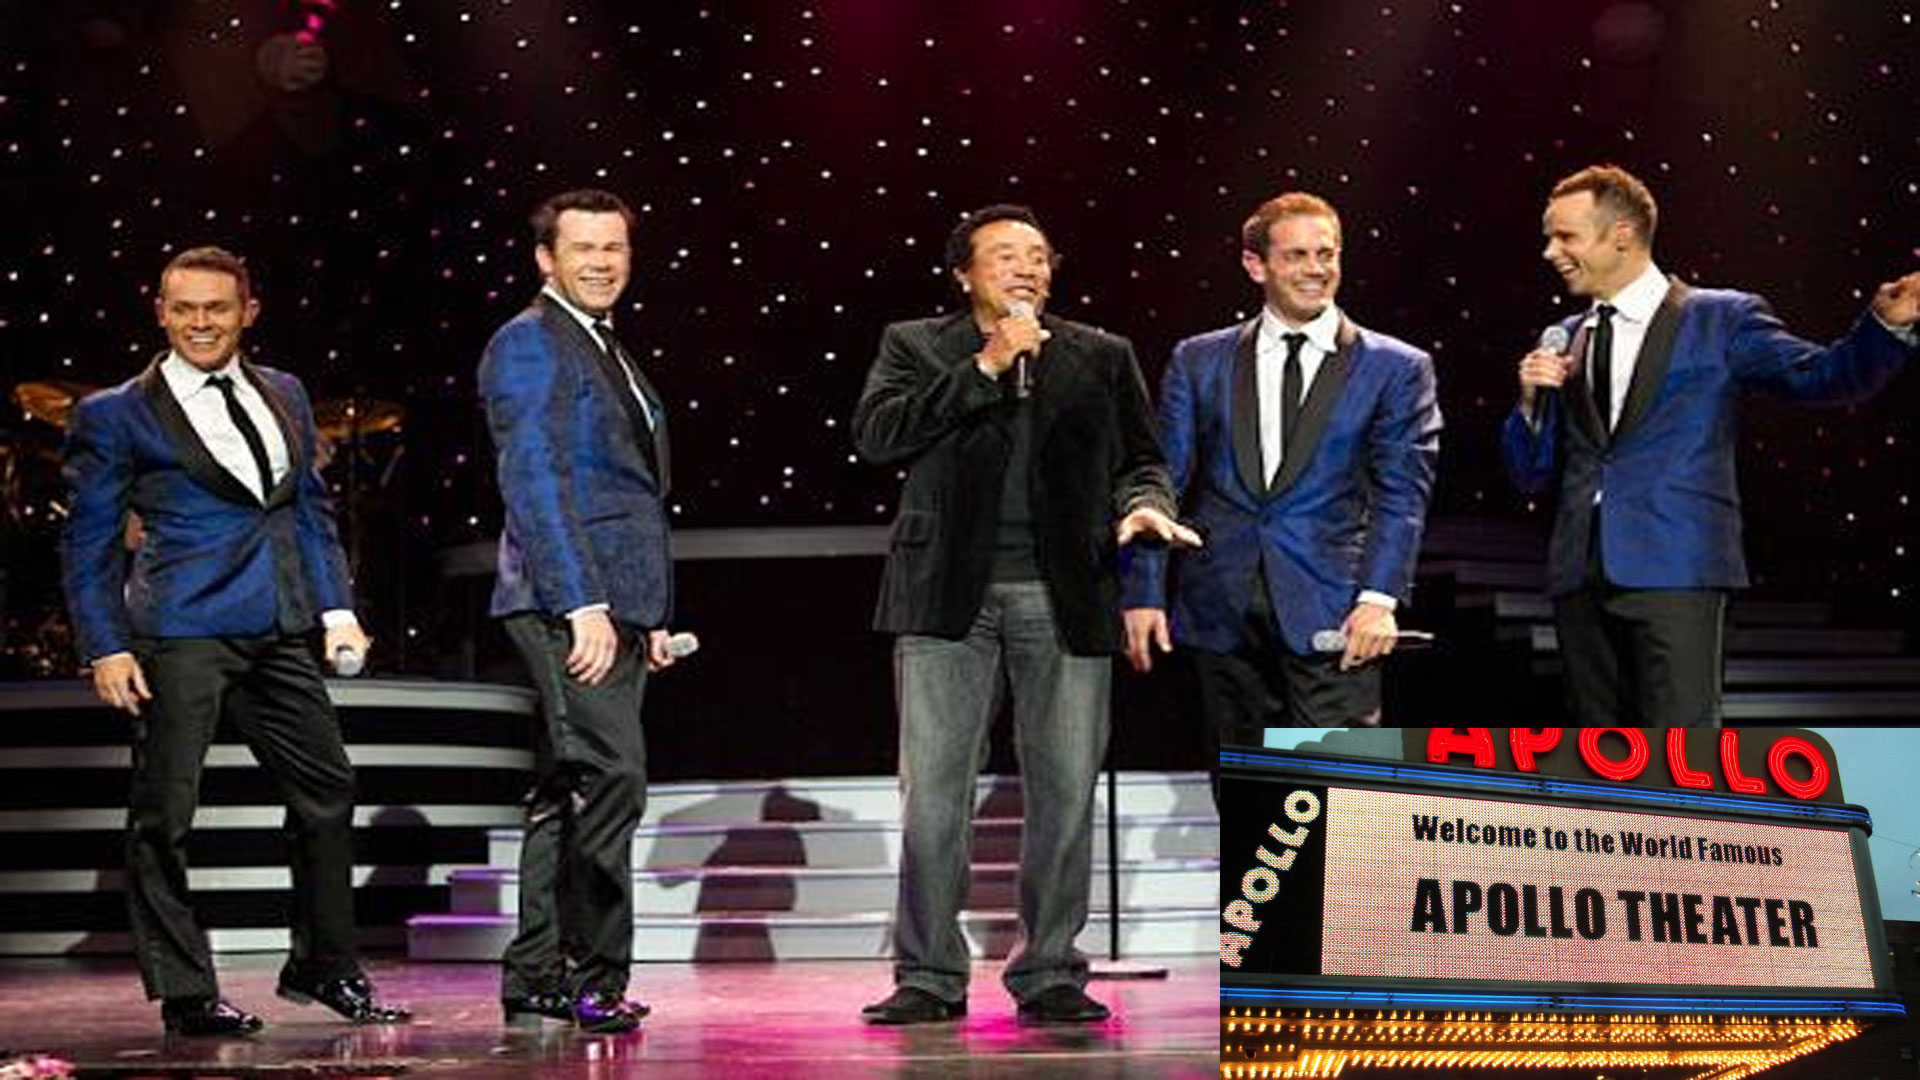 Human Nature, Australia's leading pop vocal group, Celebrates Apollo's 80th Birthday.